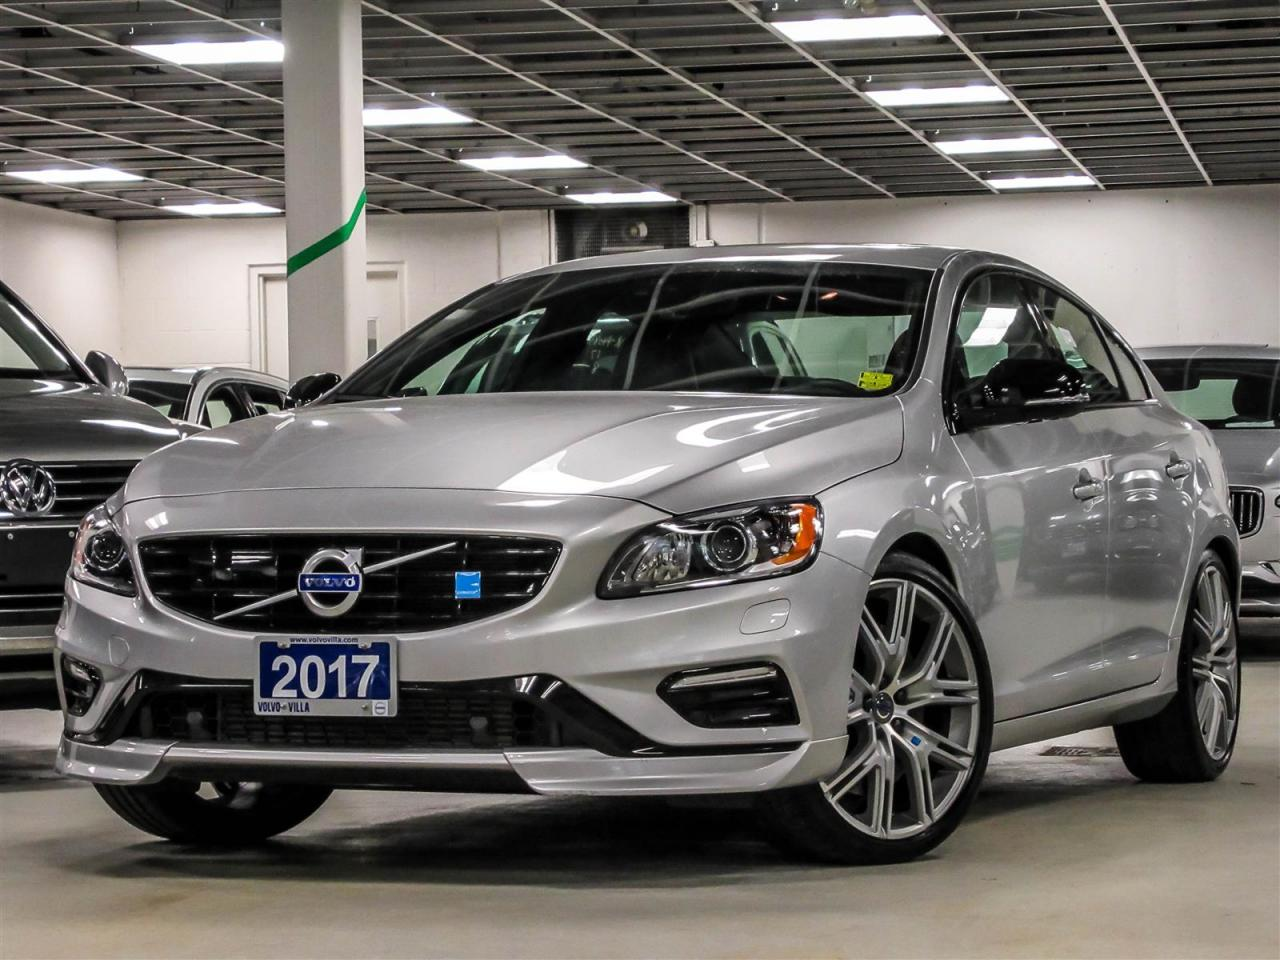 awd game of volvo inscription rear quarter the review a numbers